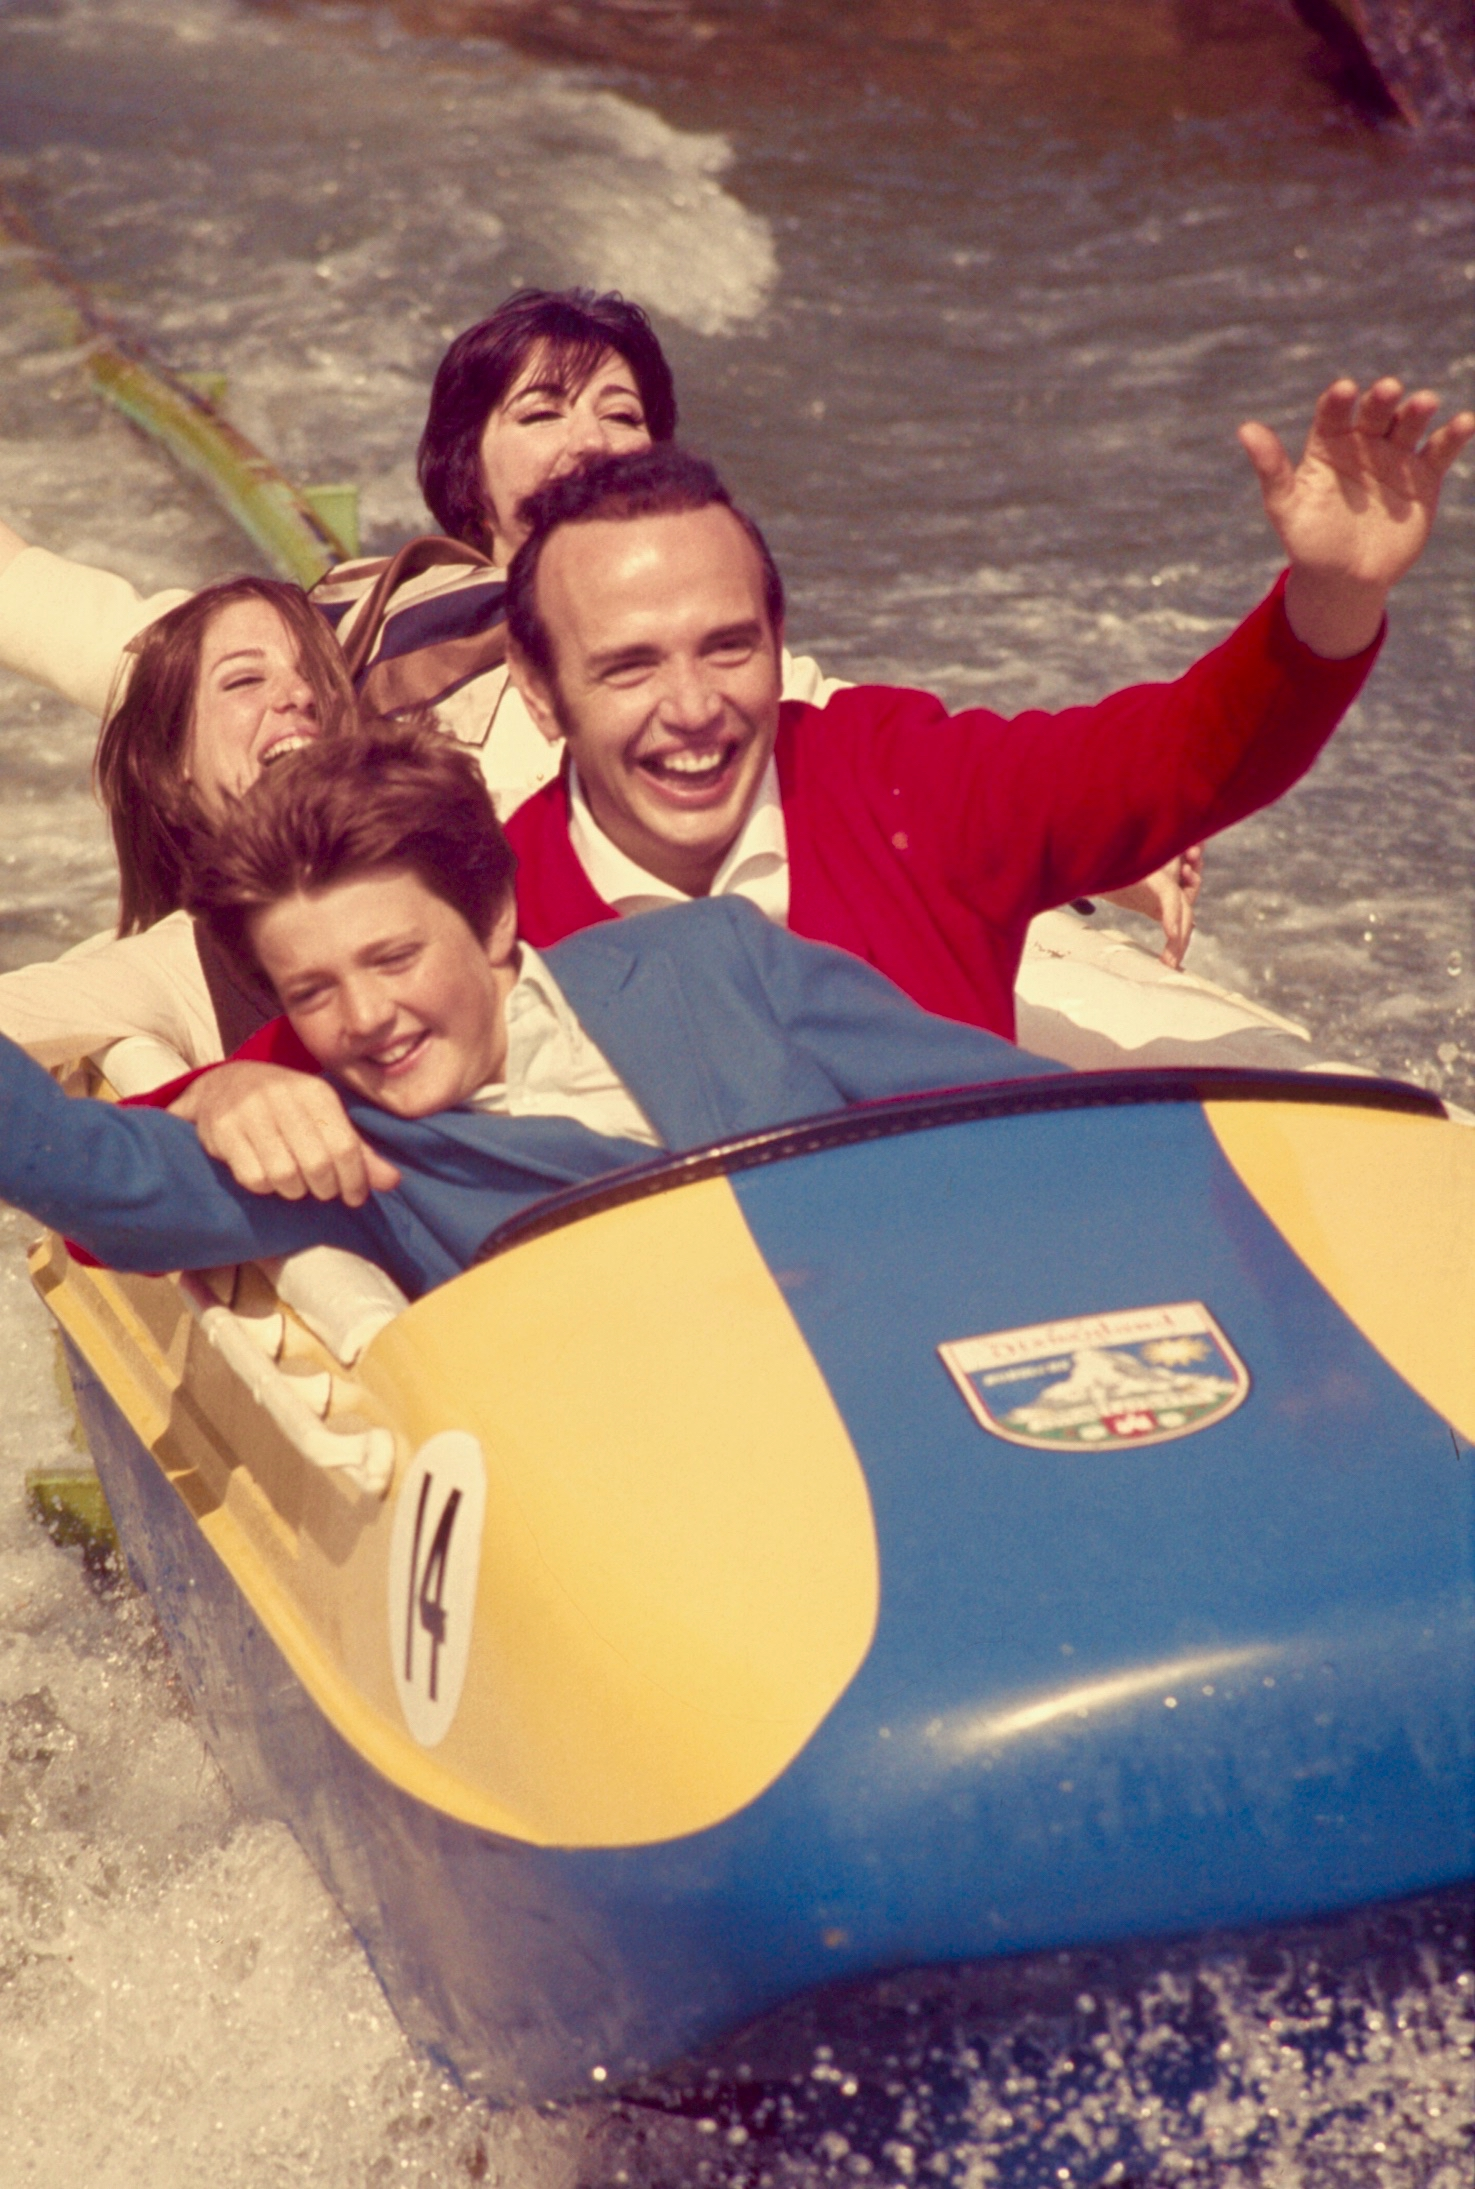 Disneyland bobsleds with Roger and his children, Laura, Alice, and Jim